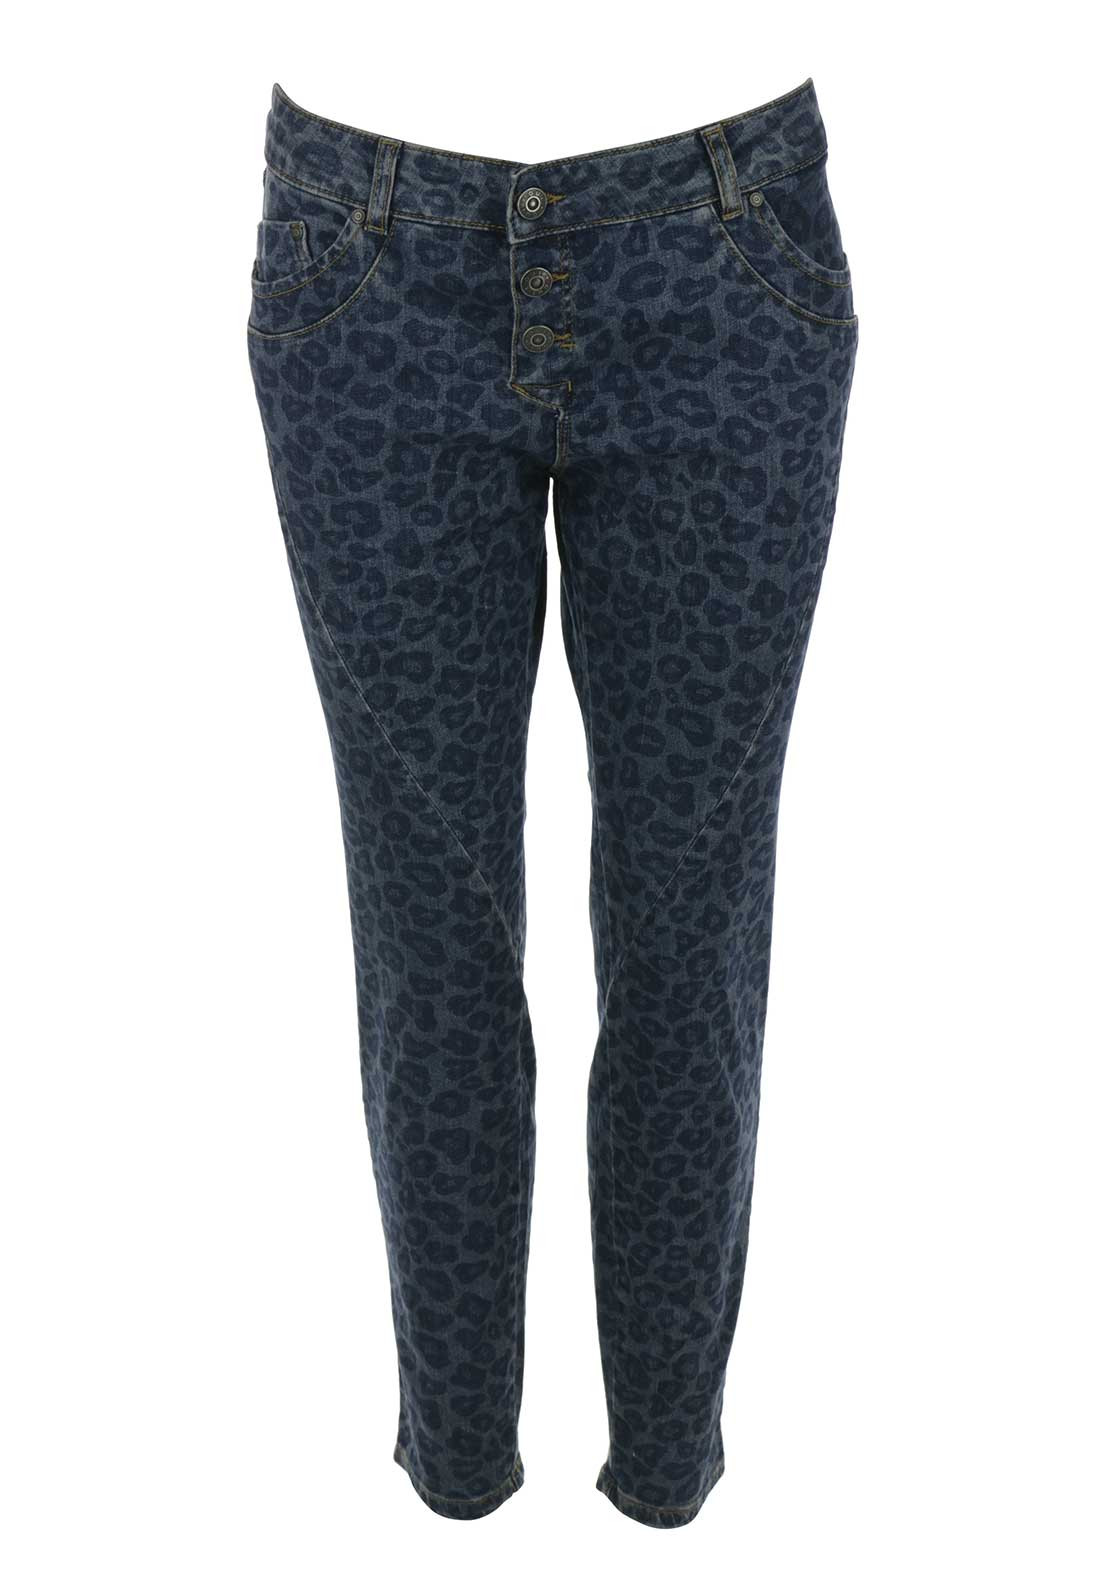 Oui Animal Print 7/8 Skinny Jeans, Blue